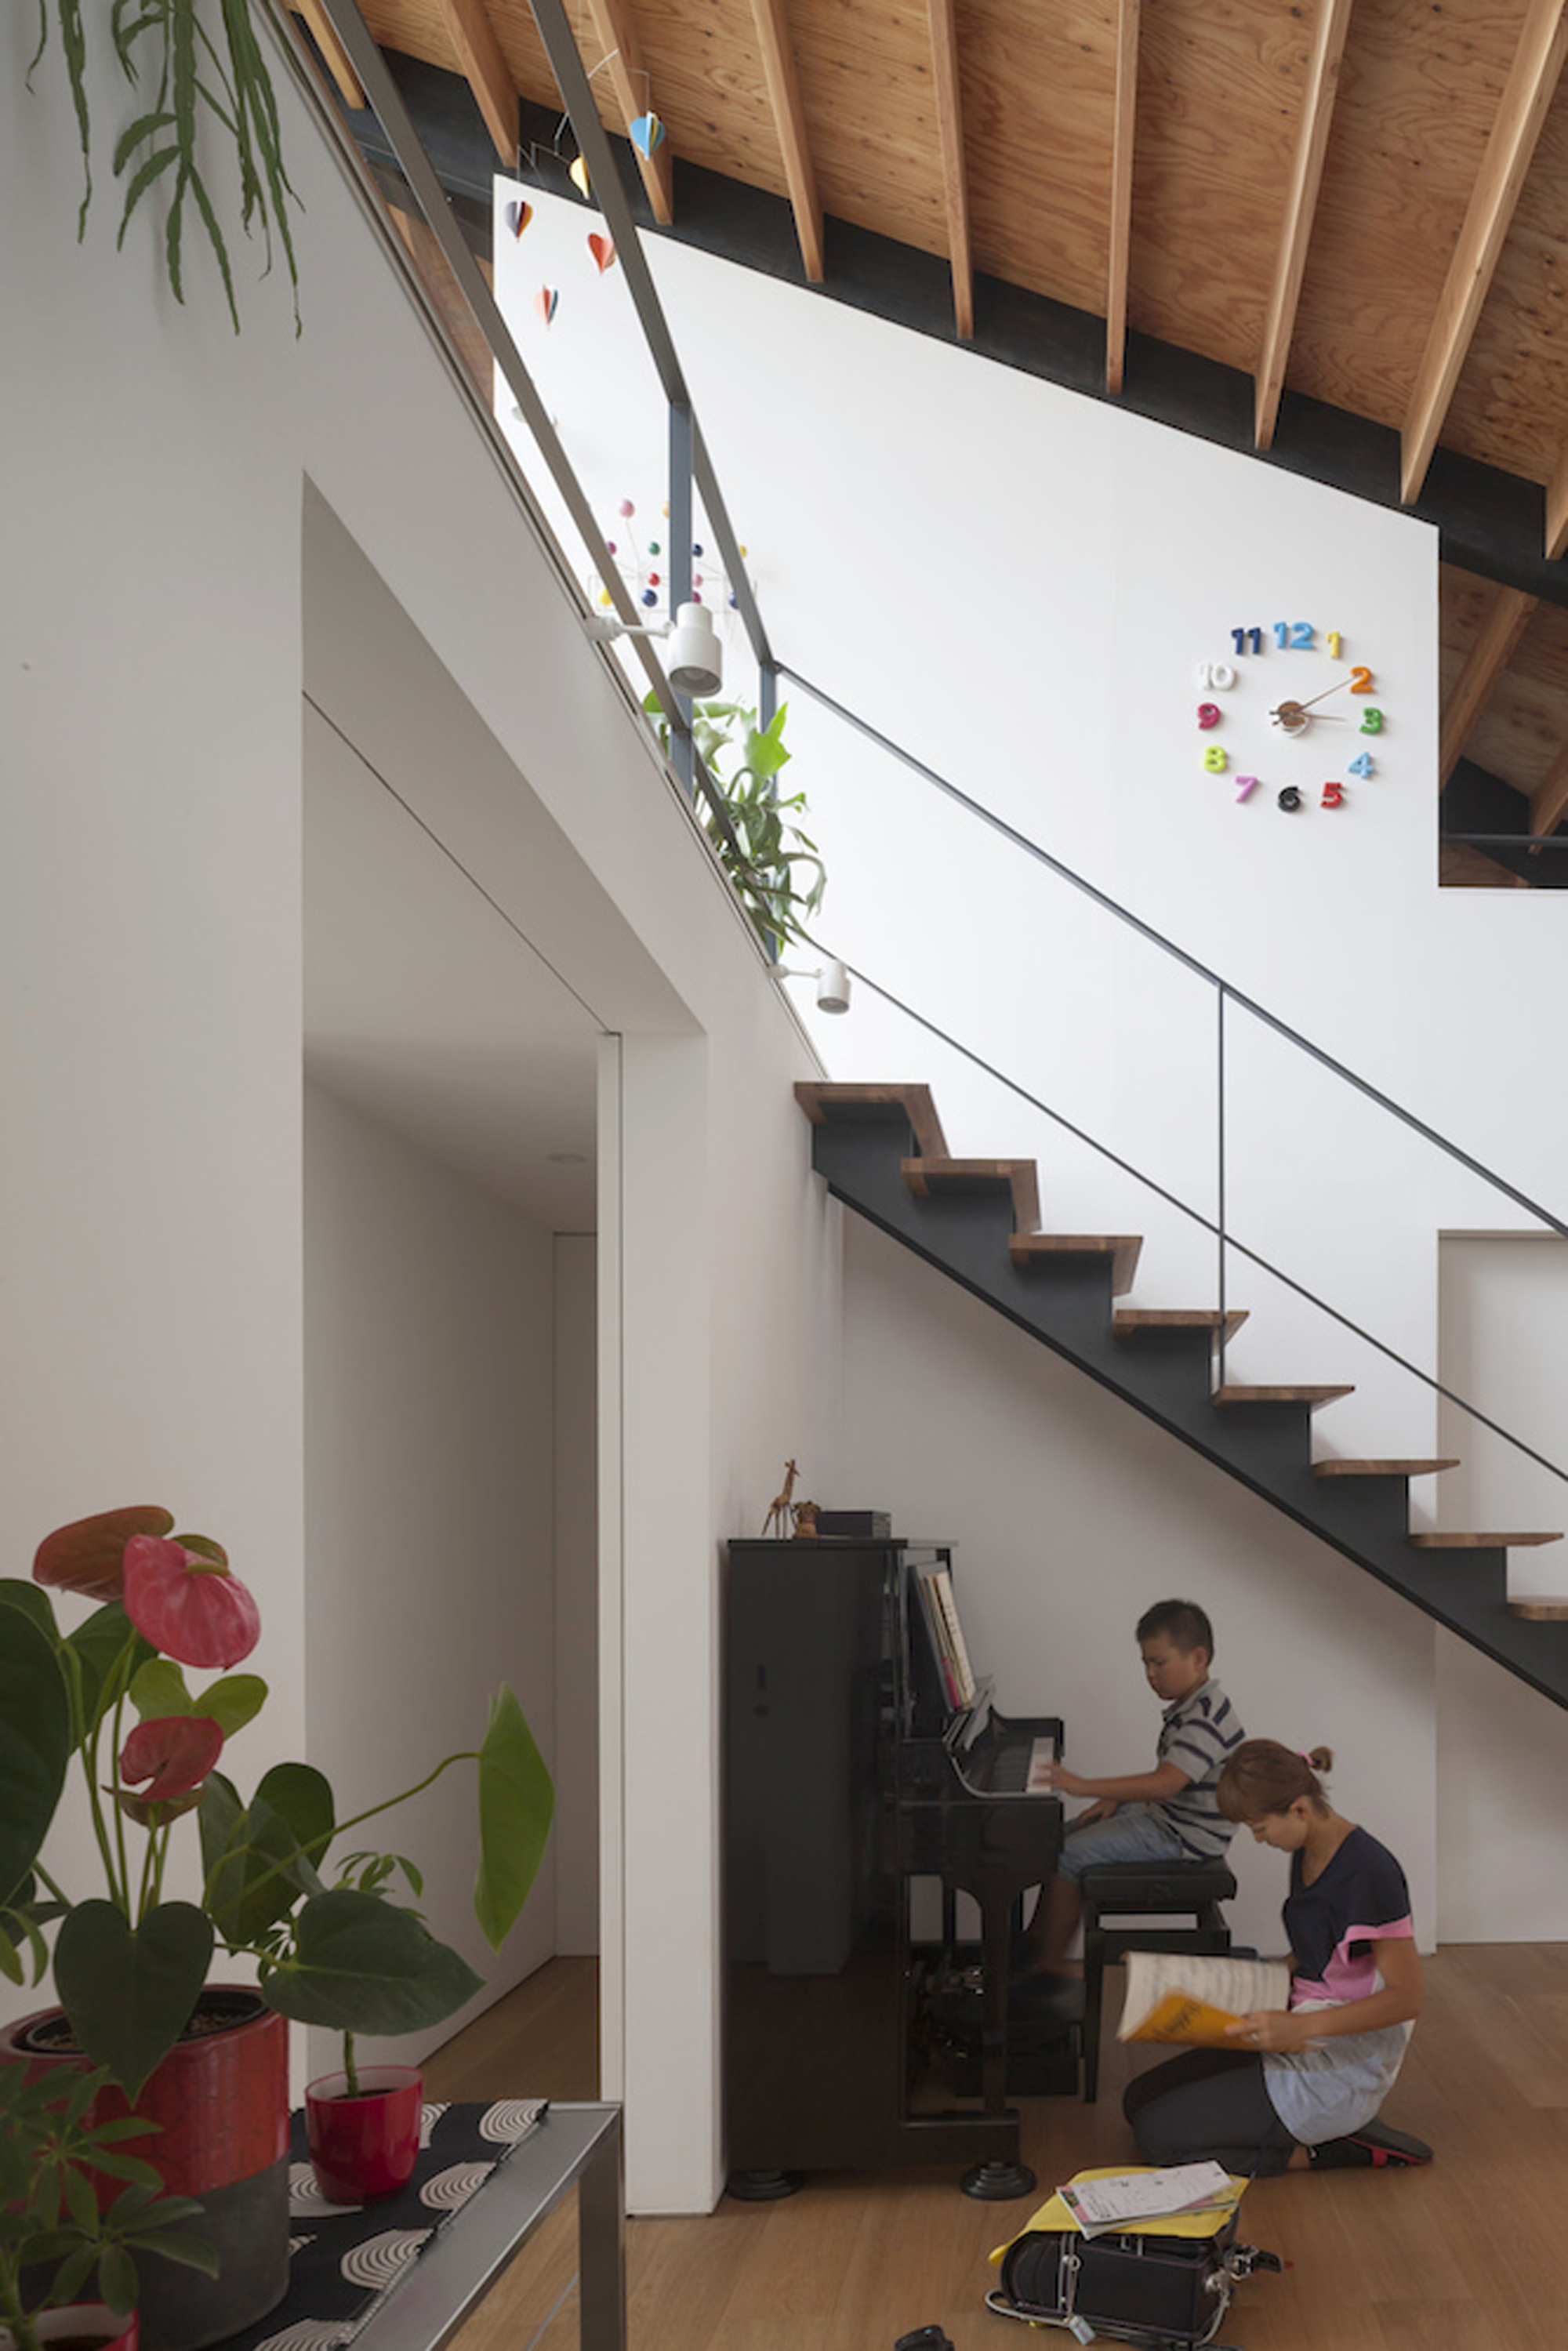 52eb1f64e8e44e2dbe00009d_house-with-a-large-hipped-roof-naoi-architecture-design-office_housewithlhr_26